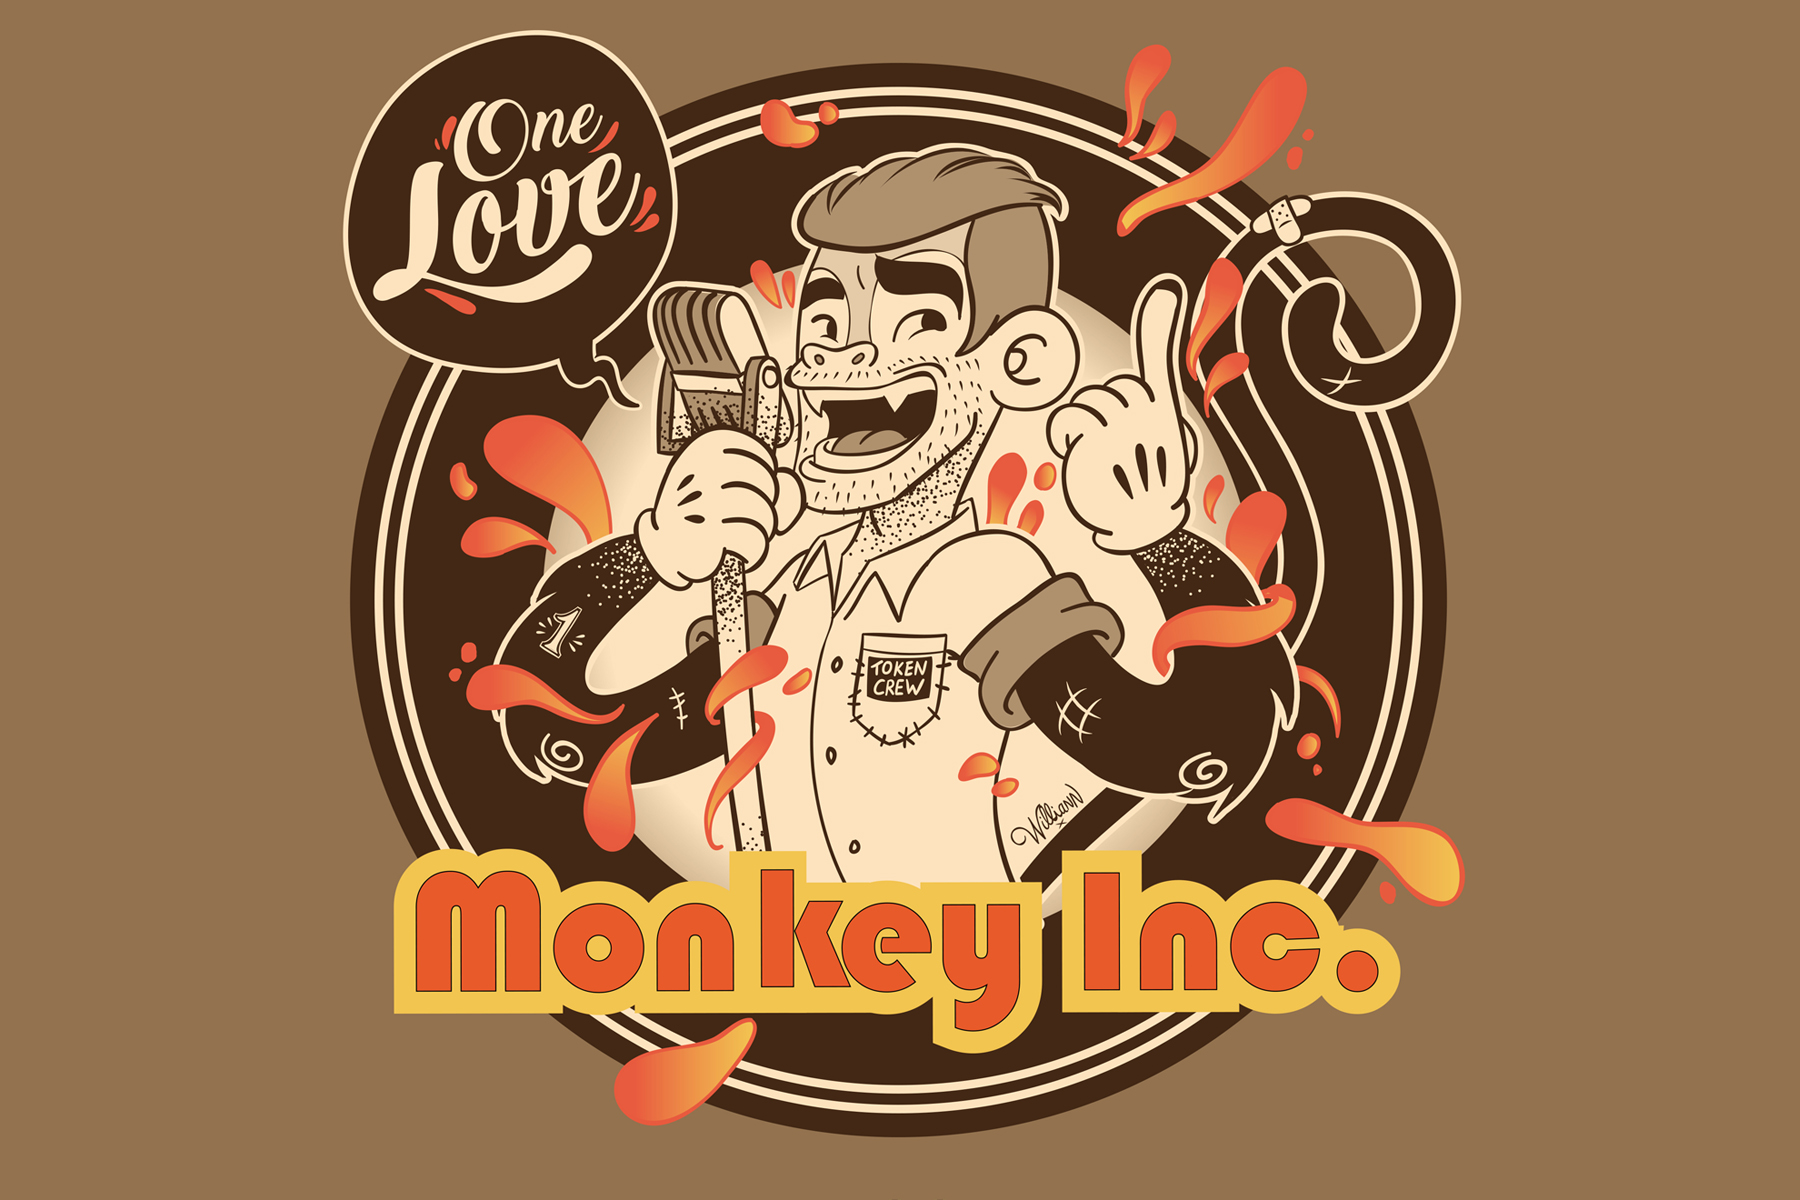 Williann Monkey Inc. - One Love